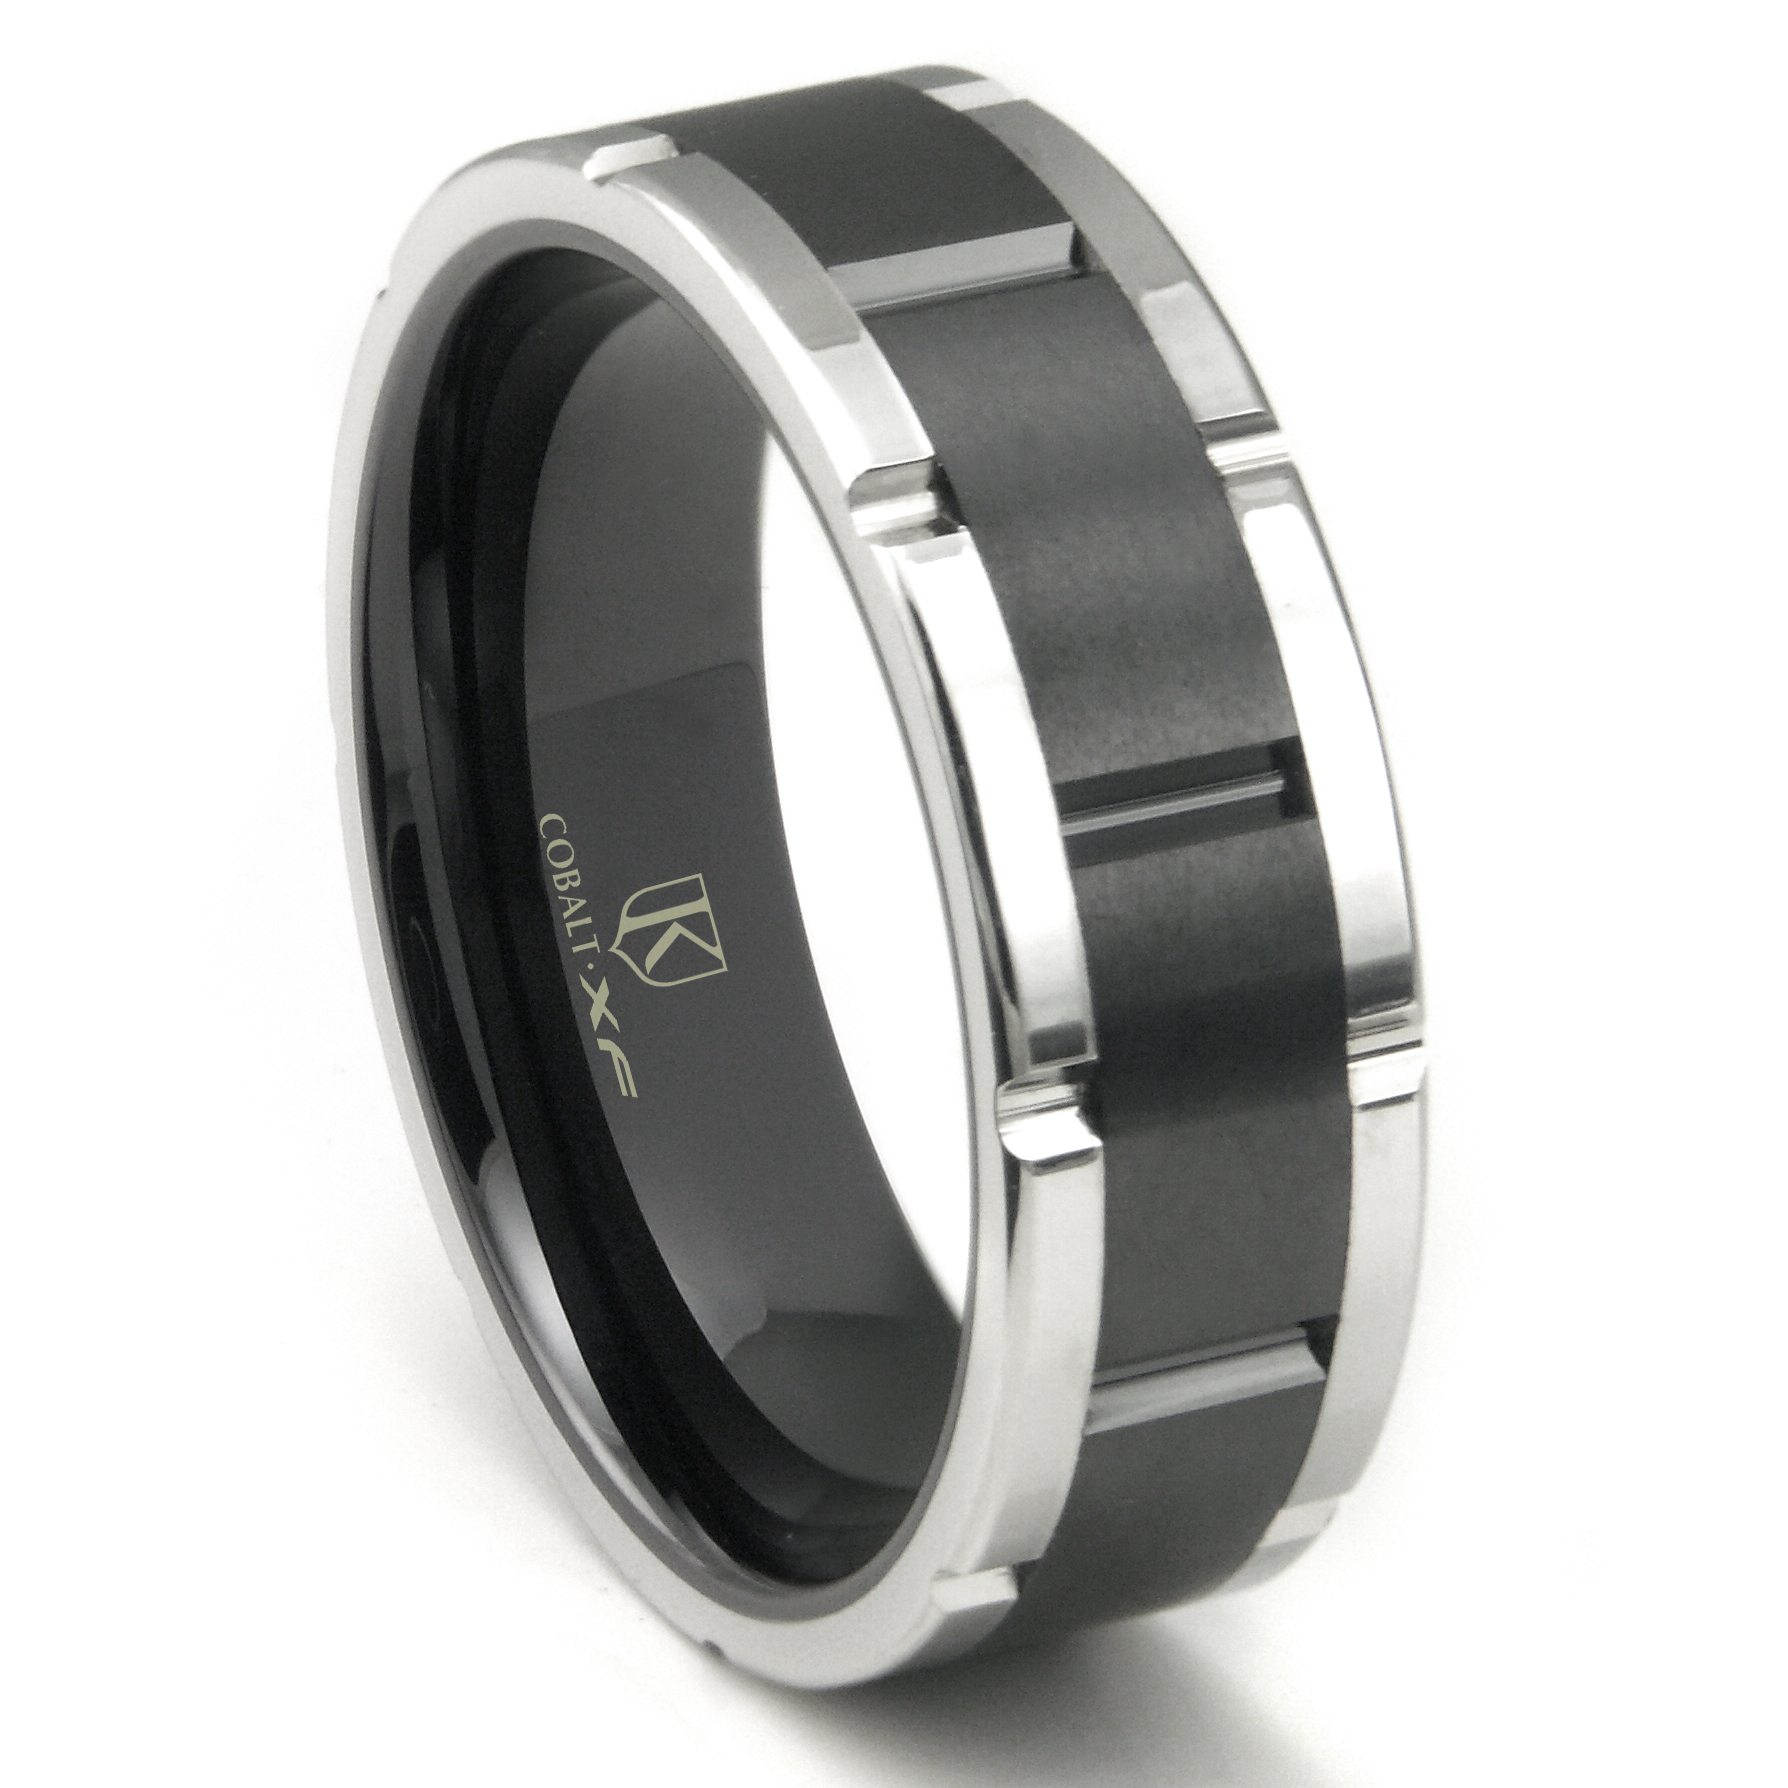 rings kaystore wedding zoom hover tungsten mv to kay mens en zm triton carbide band